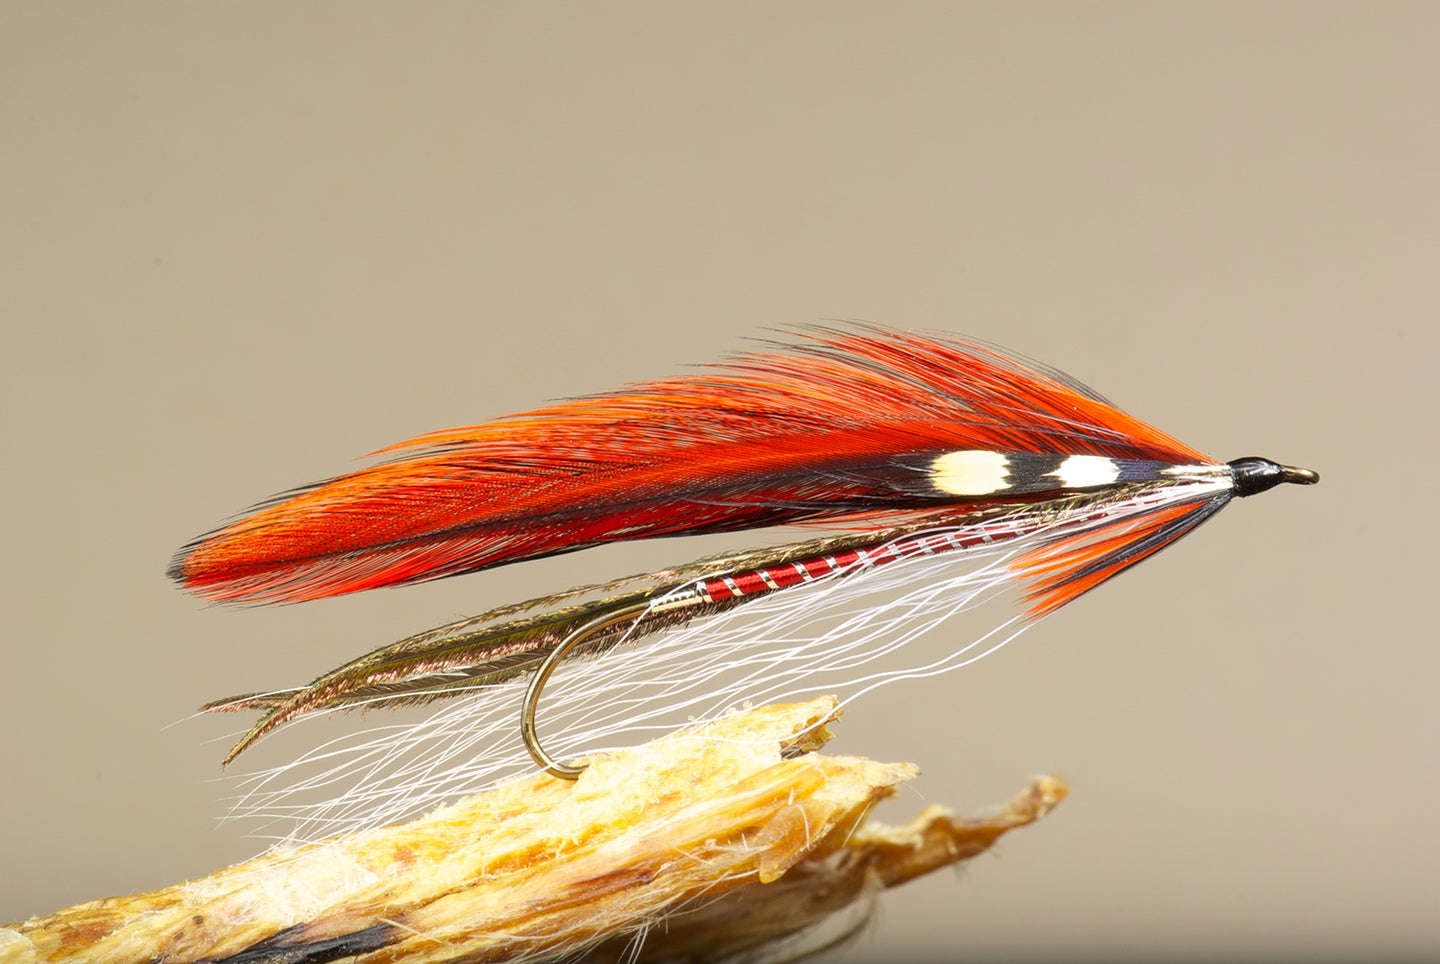 Allie's Favorite fly fishing lure.